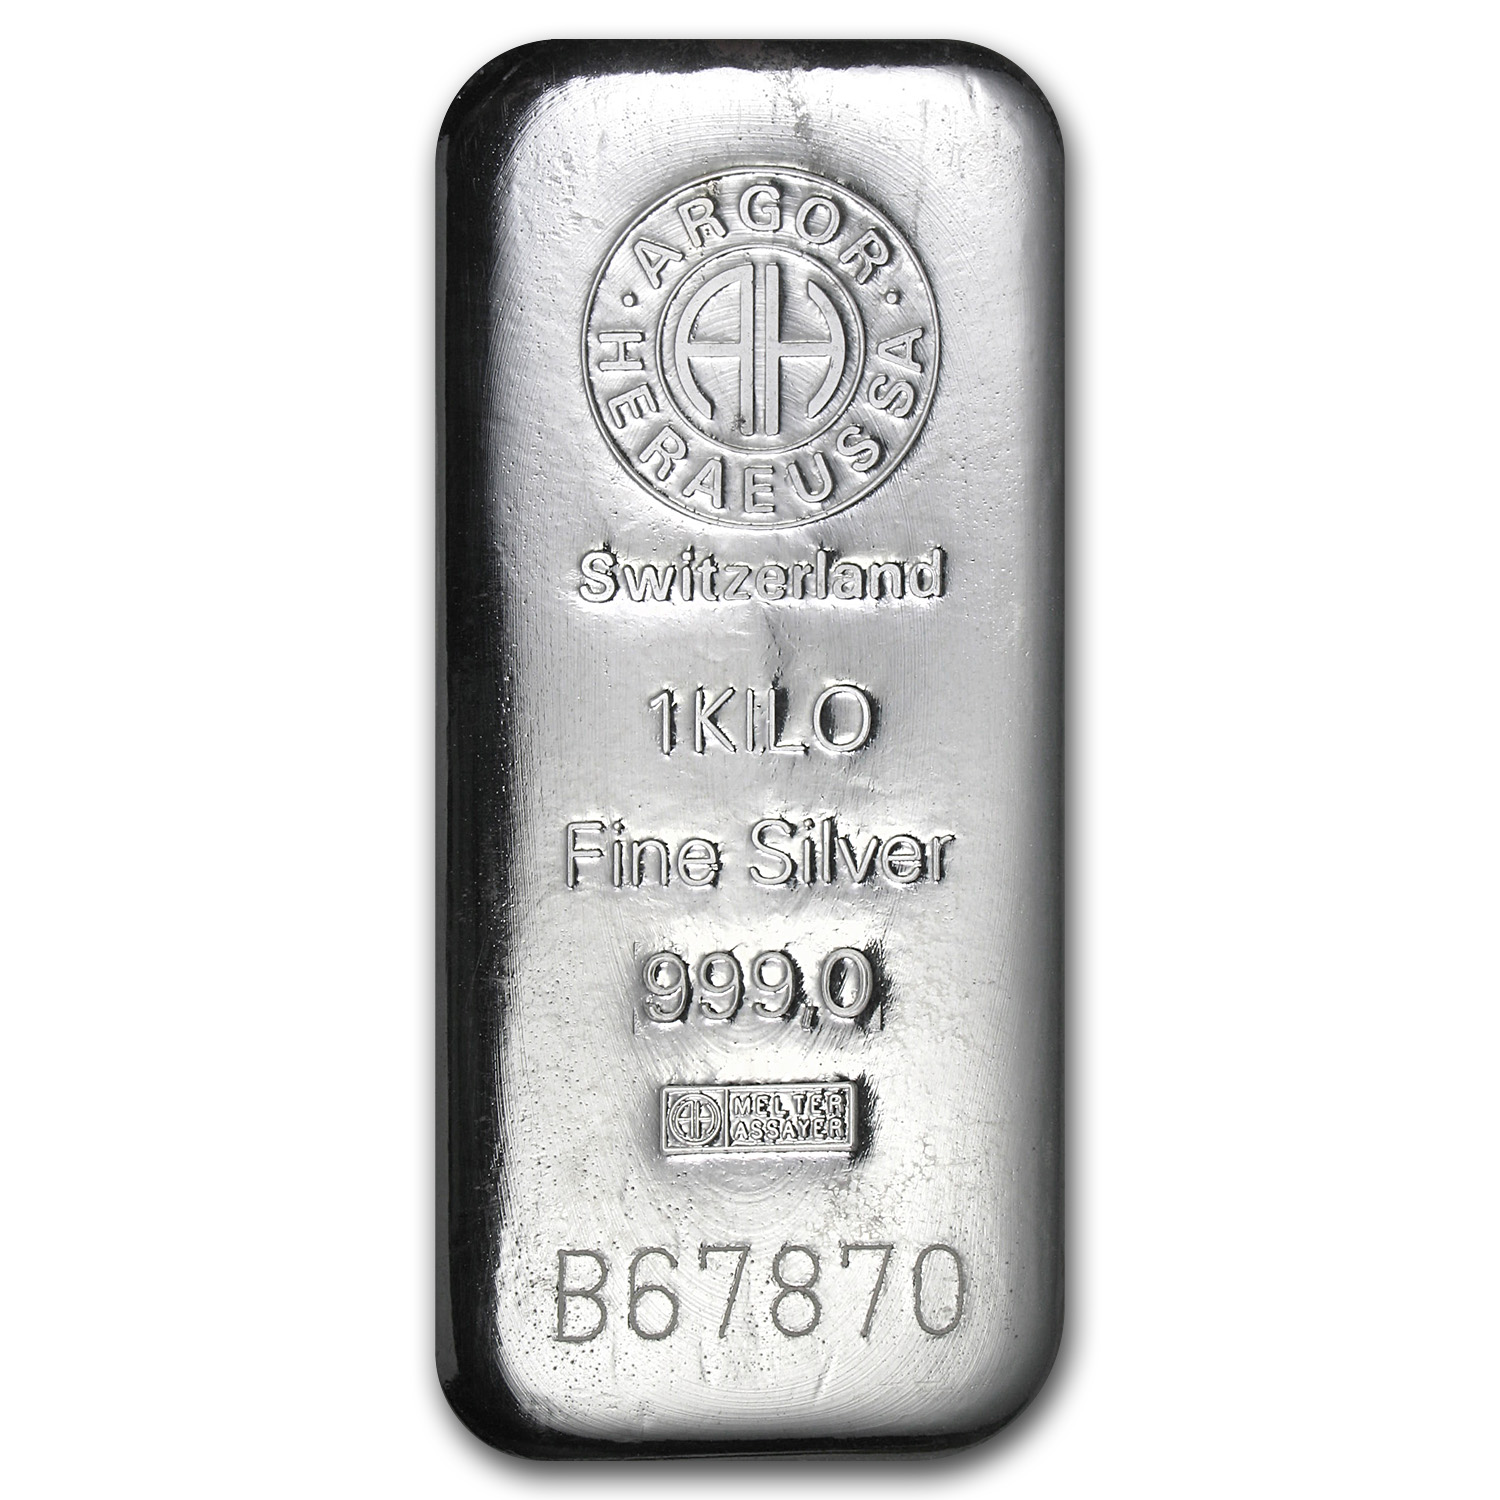 1 kilo Silver Bar - Argor/Heraeus (Switzerland)